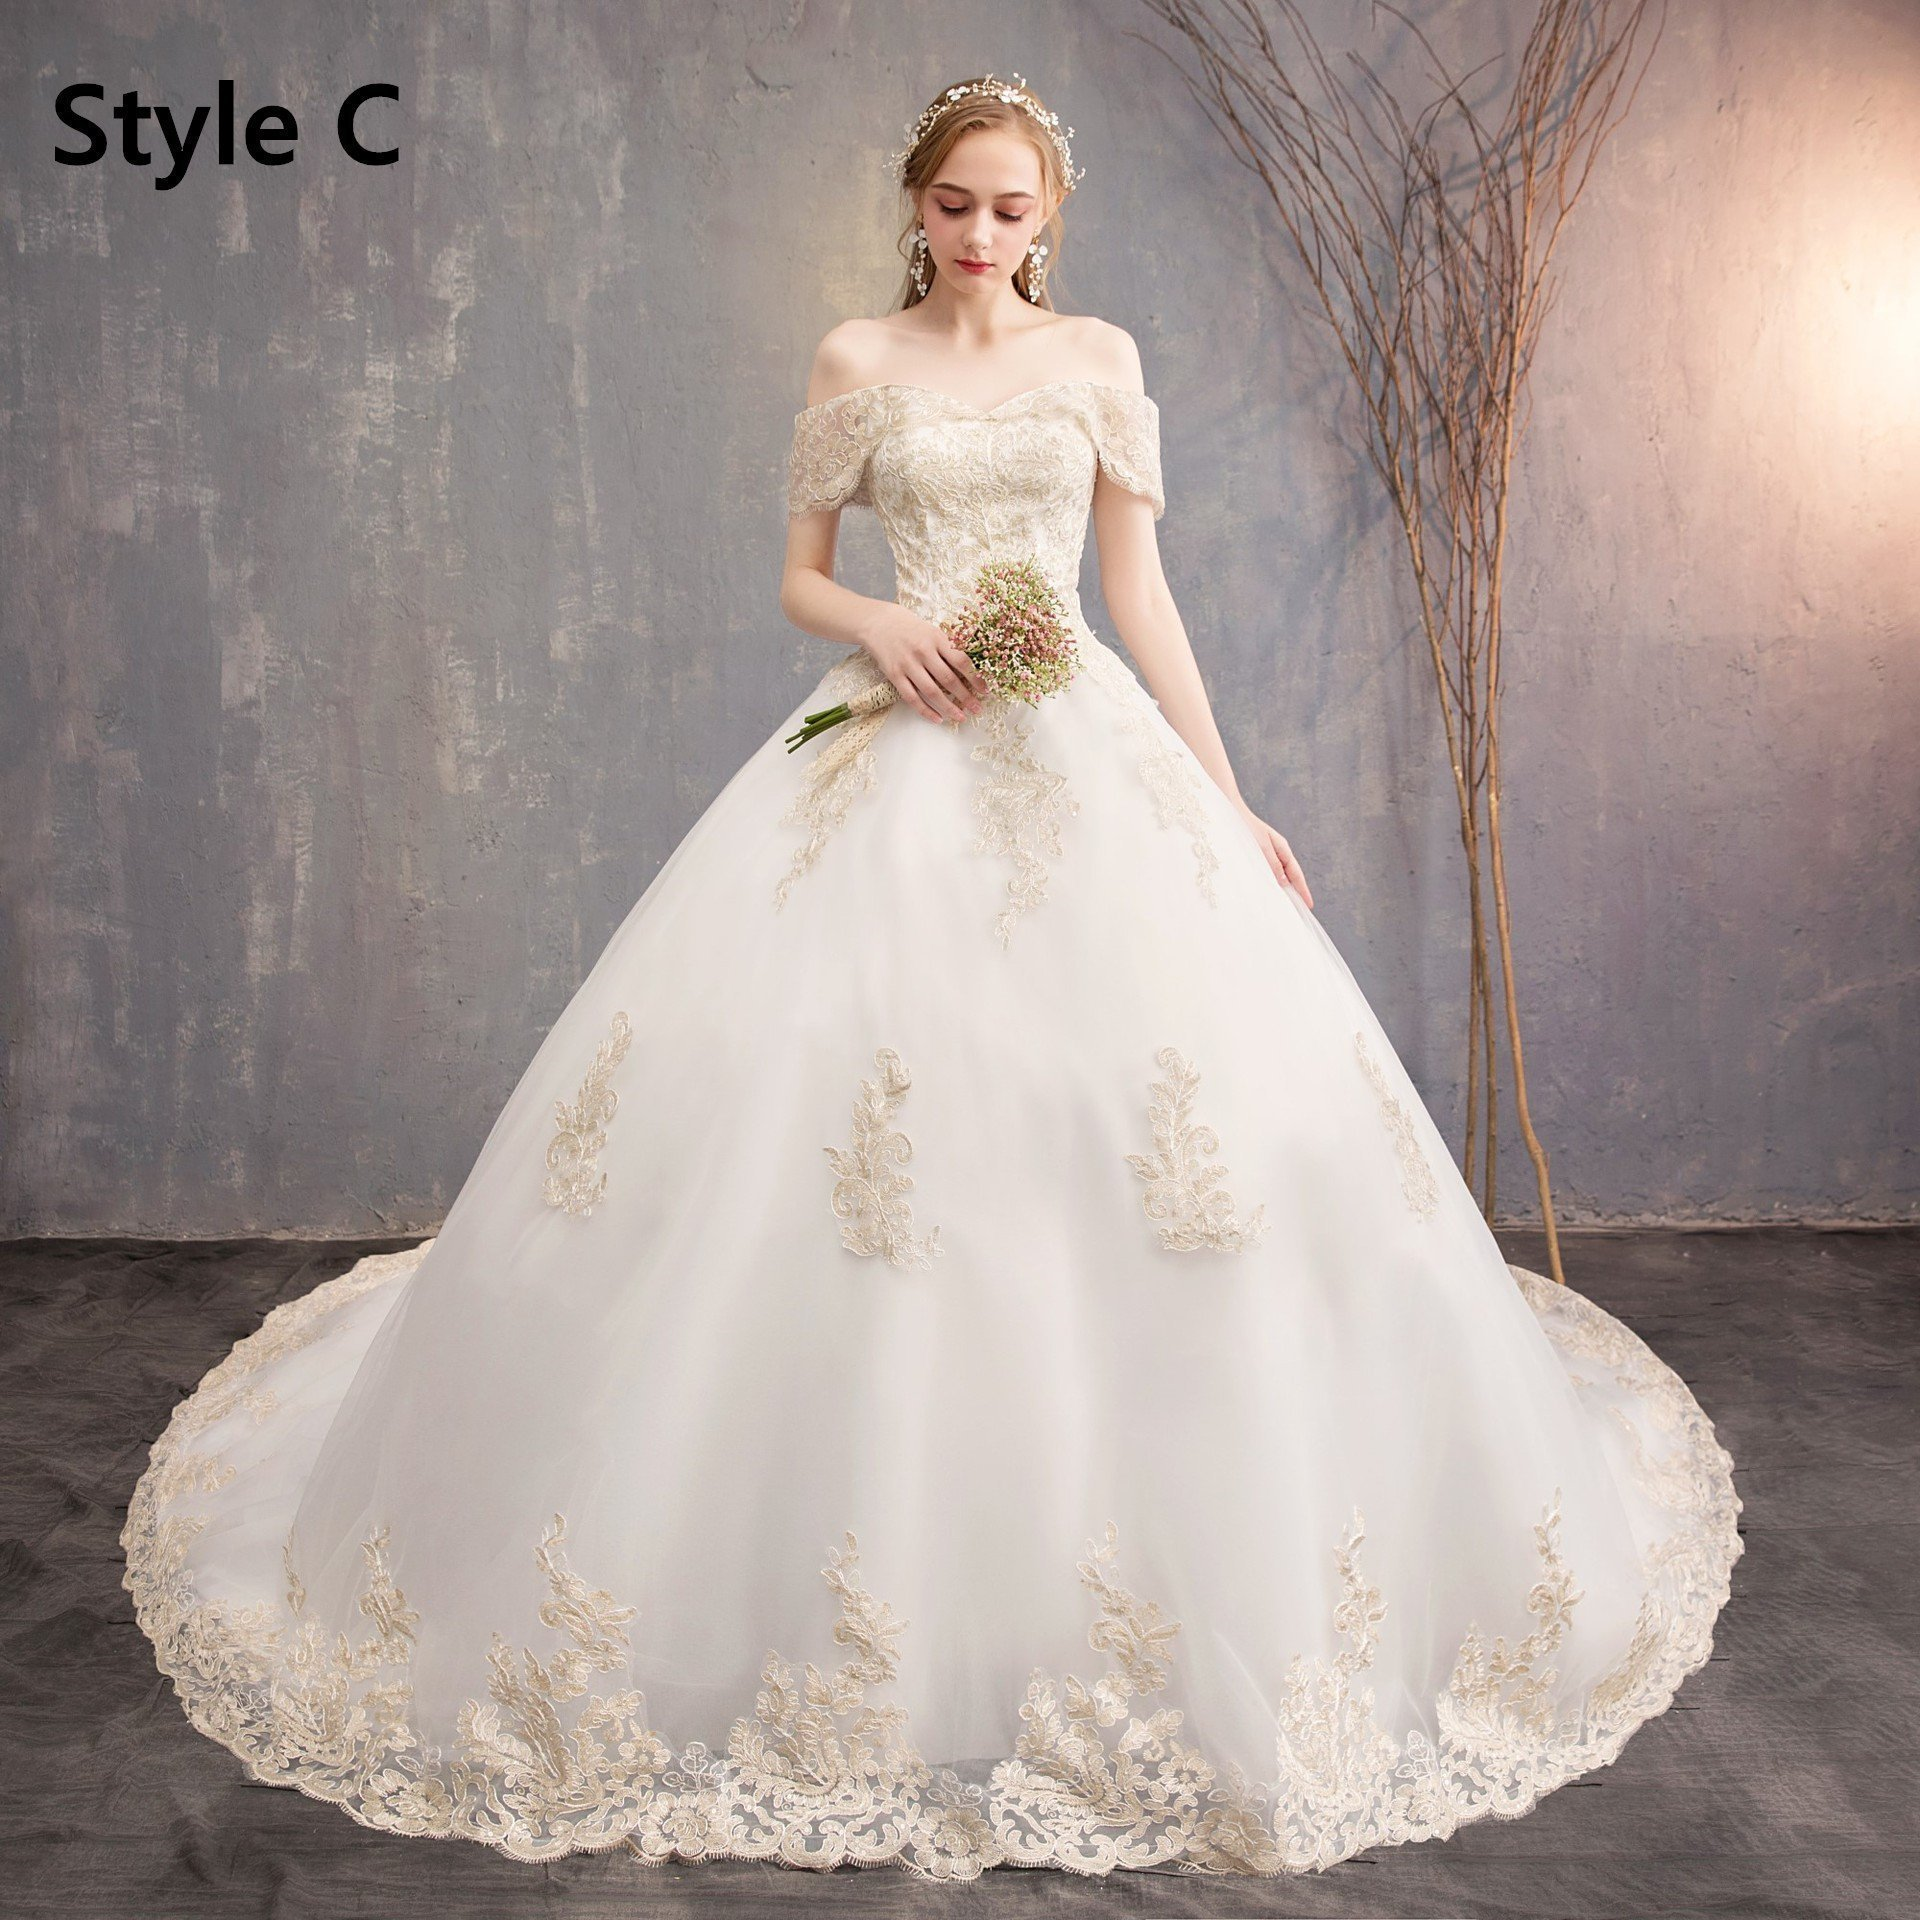 Best Wedding Dresses Lace Dresses Floral Tank Dress Wedding Bells White Lace V Neck Dress Royal Blue Gown Unconventional Wedding Dresses Wedding Apparel